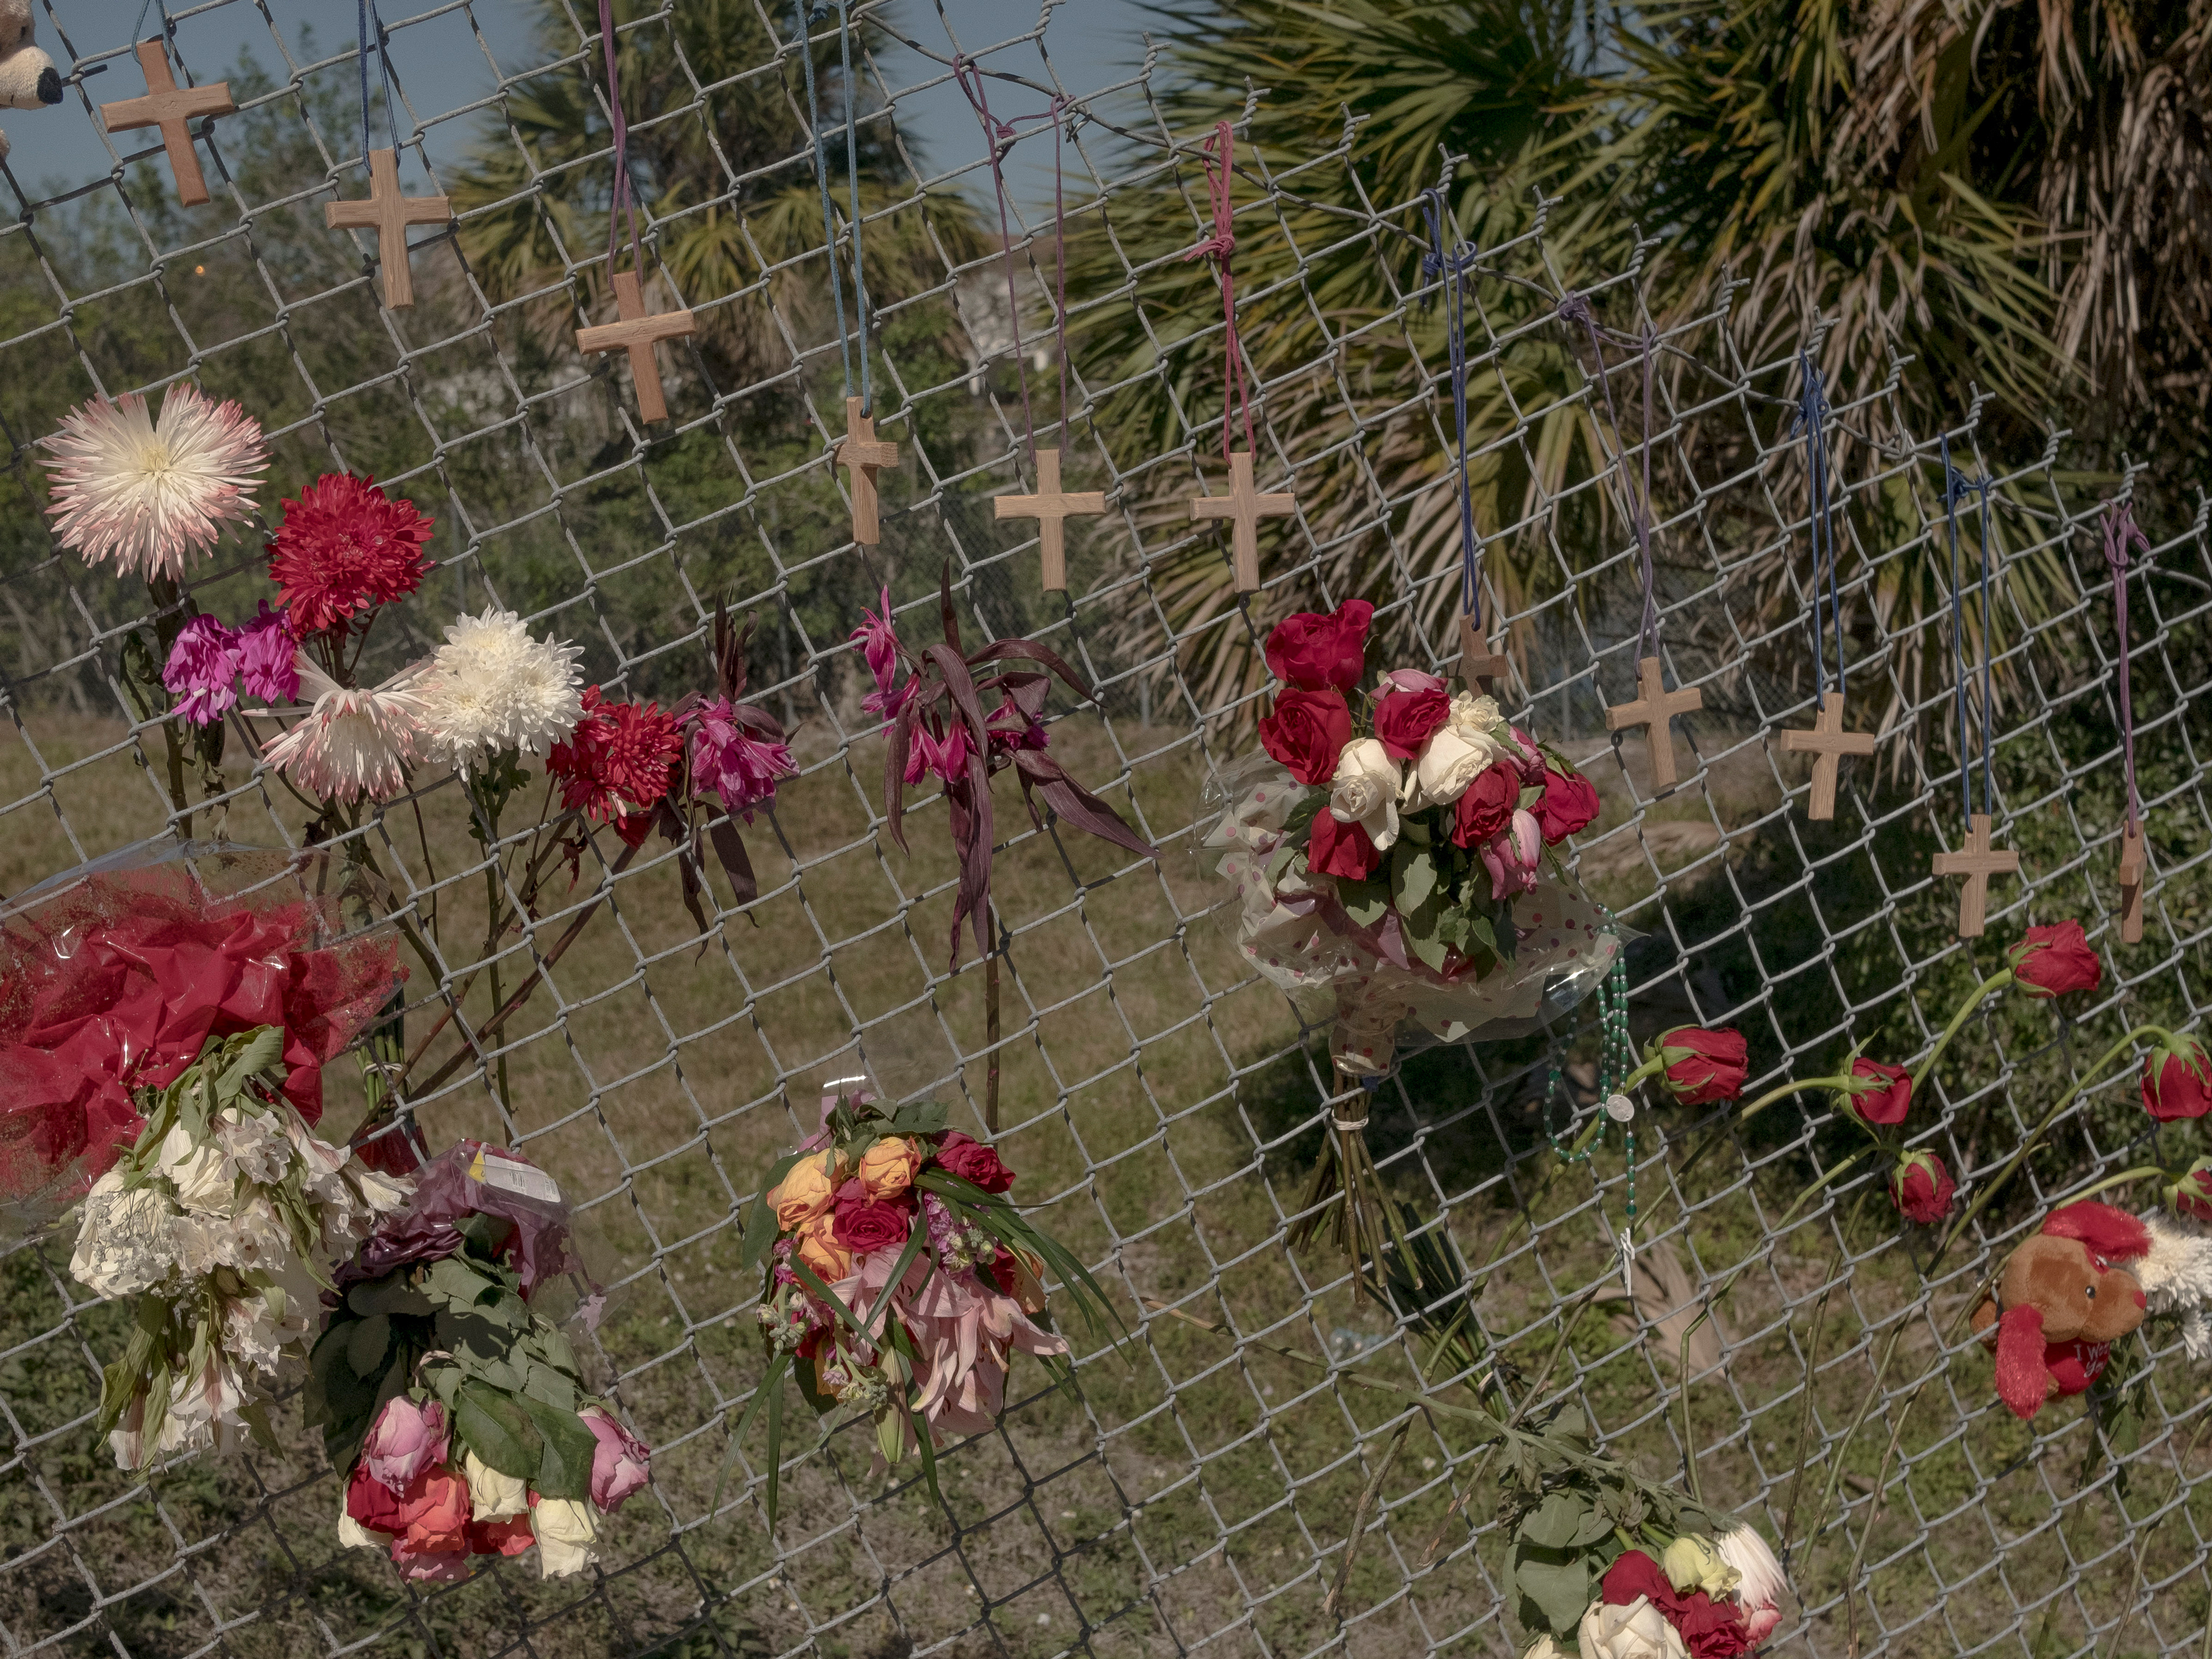 Flowers and crosses were put up on a fence across from the high school, the closest anyone could get to the school after the shooting.